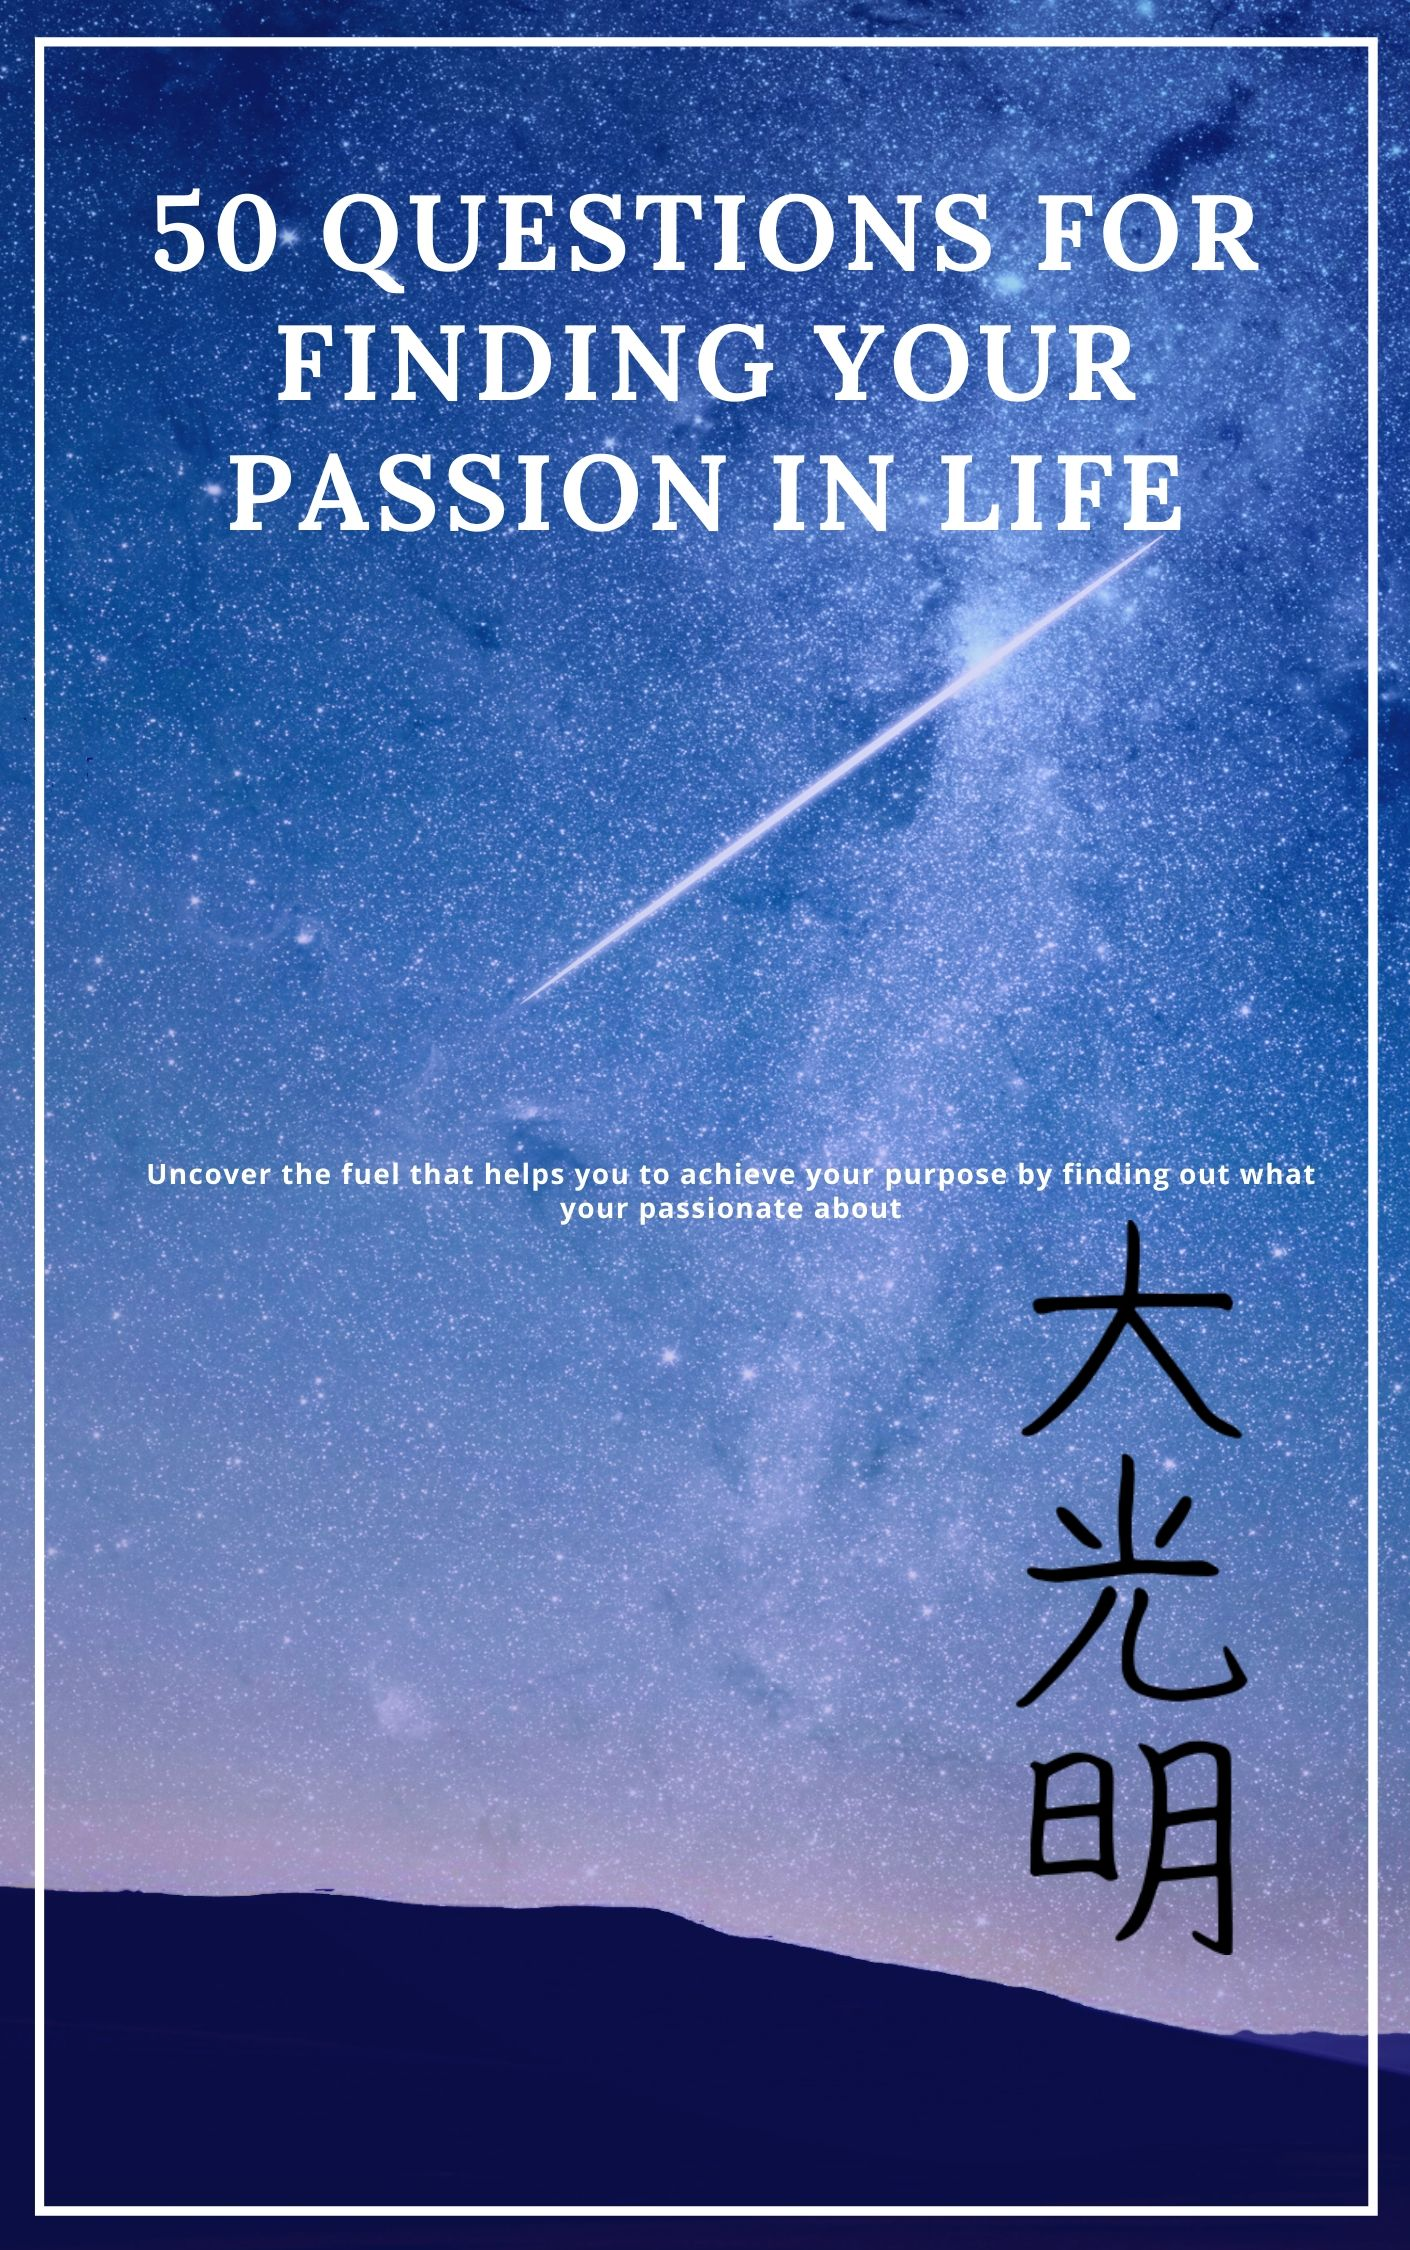 50 Questions For Finding Your Passion In Life